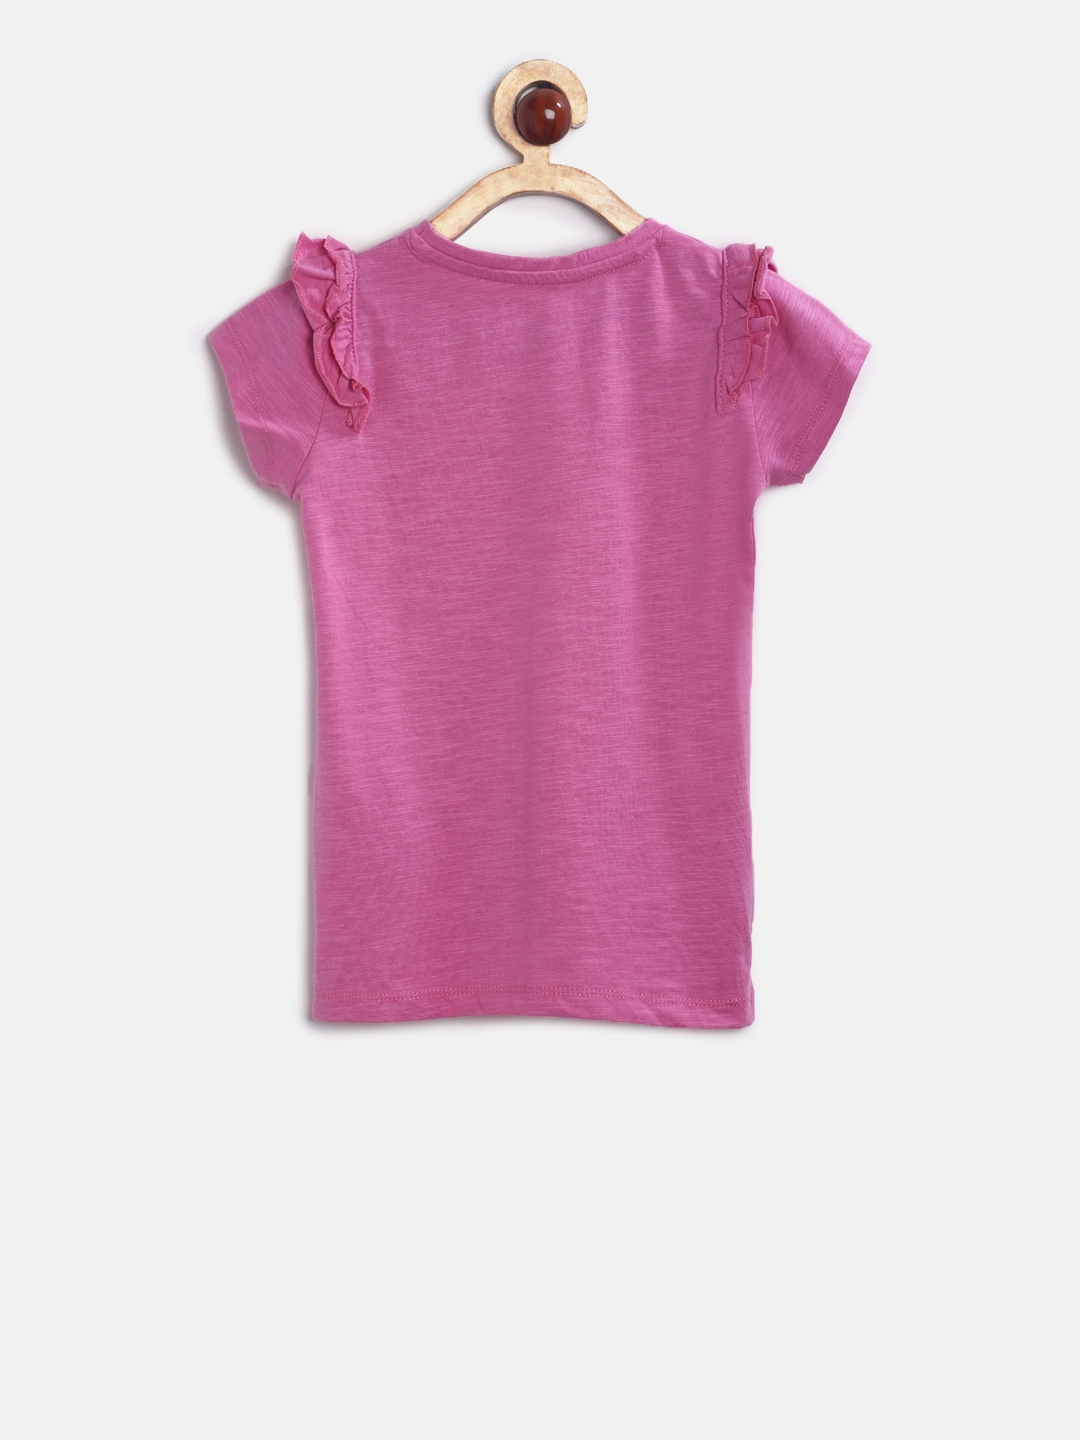 9f4f5cd7e Buy Mothercare Girls Pink Solid Top - Tops for Girls 2181392